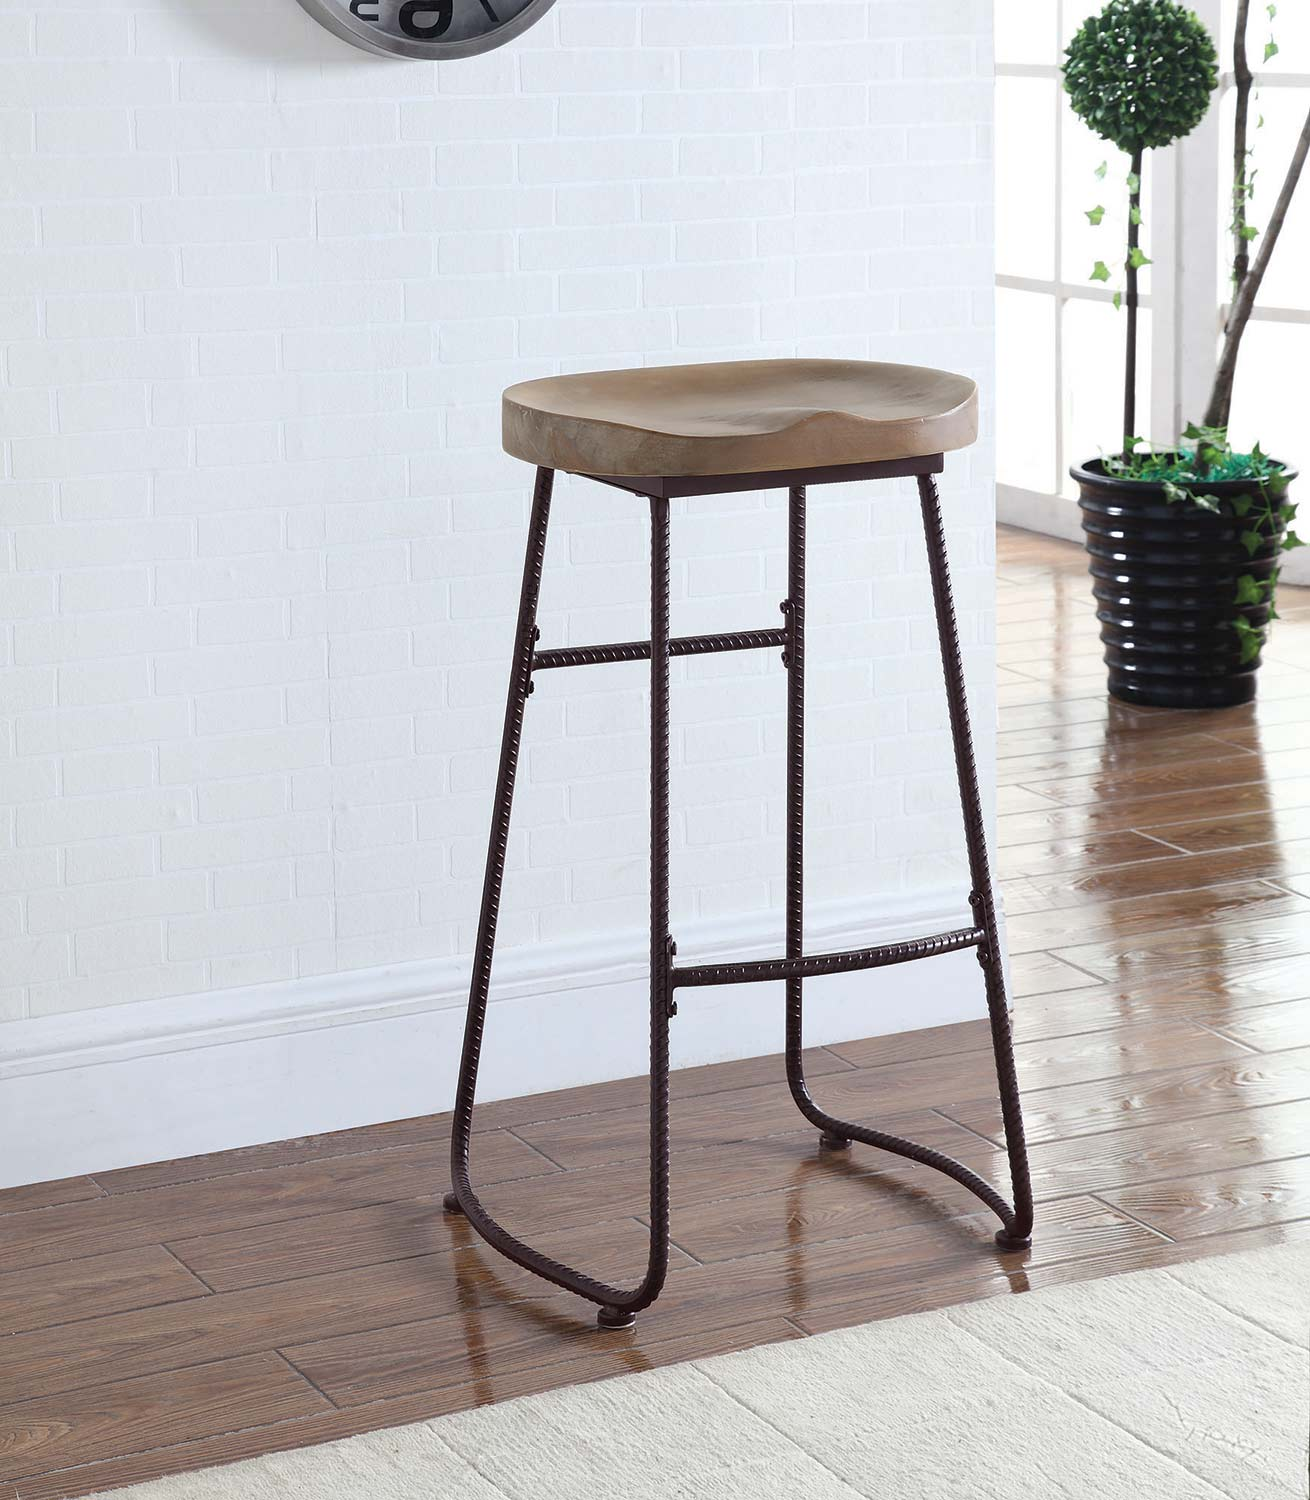 Coaster 101086 30 Inch Bar Stool - Dark Bronze